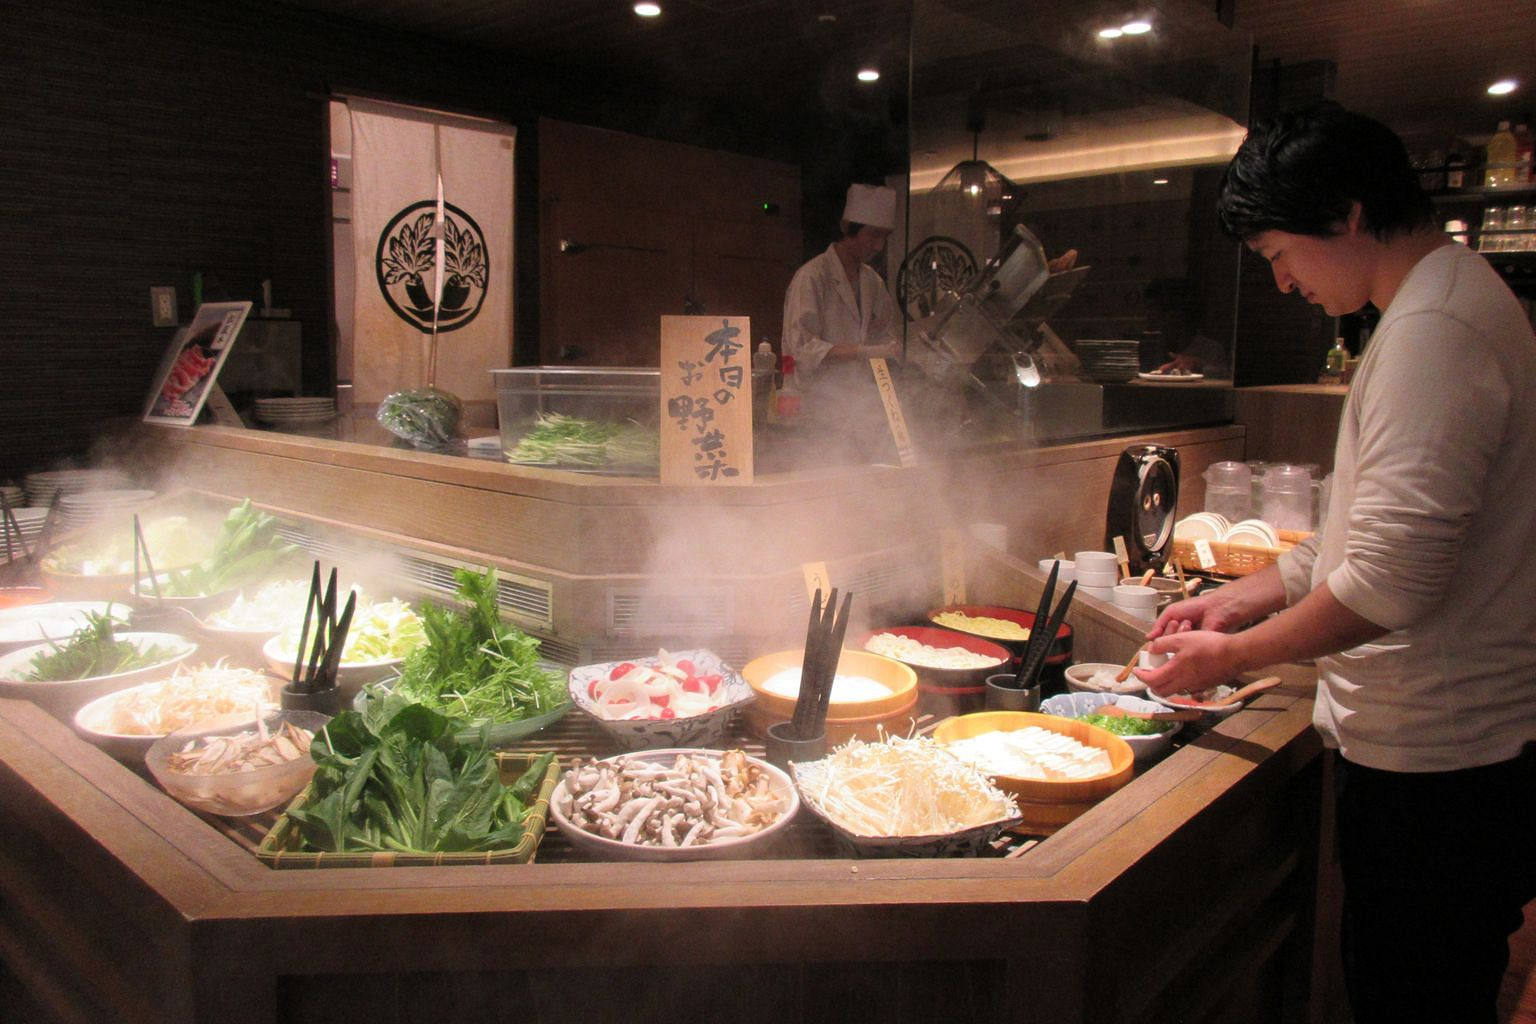 Singaporean consumers are spoilt for choice and like new ideas, said Mr Tanaka. A Shabu Sai restaurant in Tokyo, where the traditional shabu shabu is given a contemporary touch with specially designed buffet counters equipped with mist sprays that ke